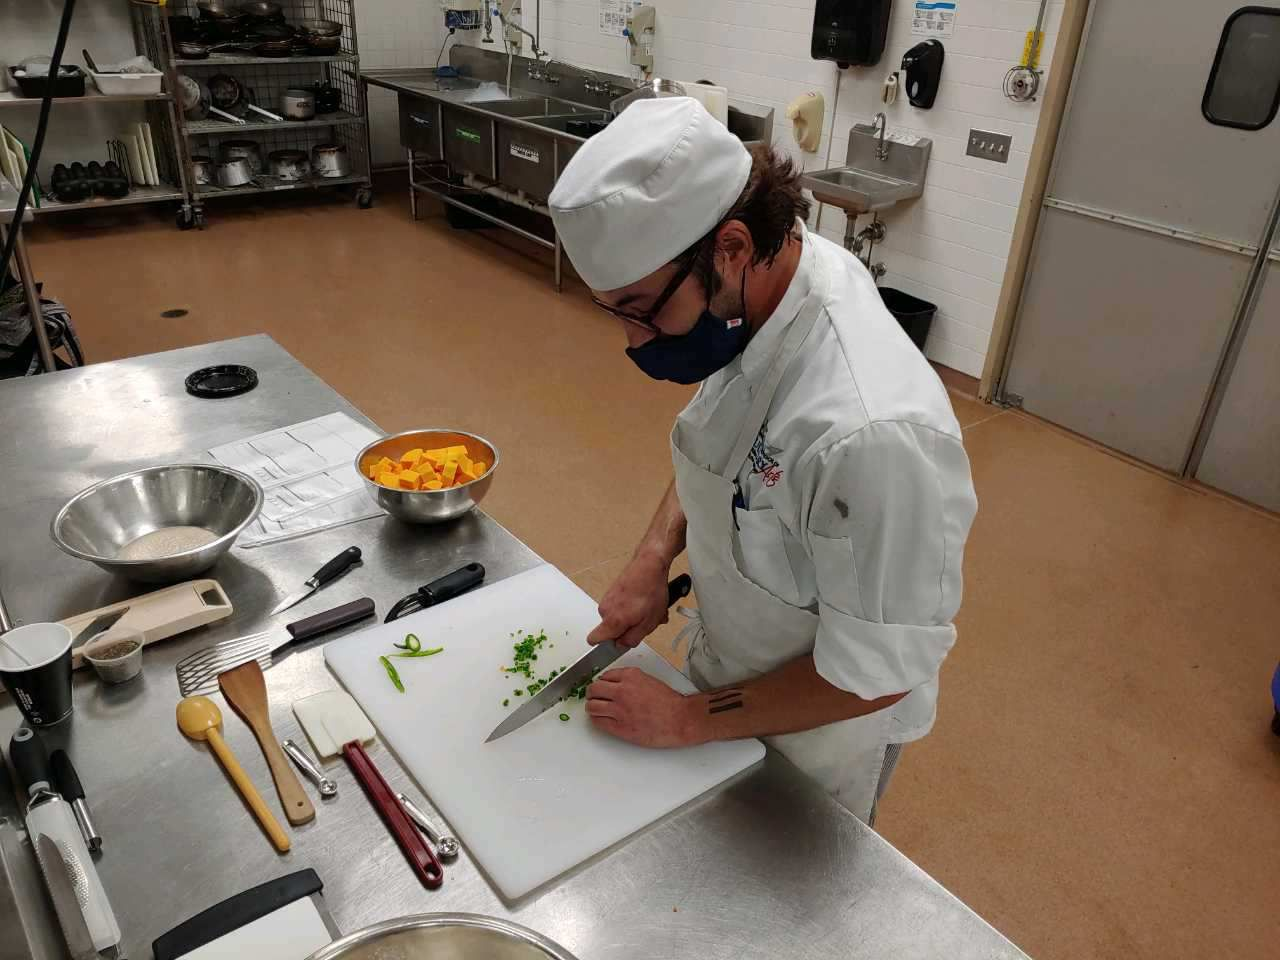 Students Continue To Attend Culinary Classes Despite Dire Restaurant Bar Outlook From Coronavirus Pennlive Com